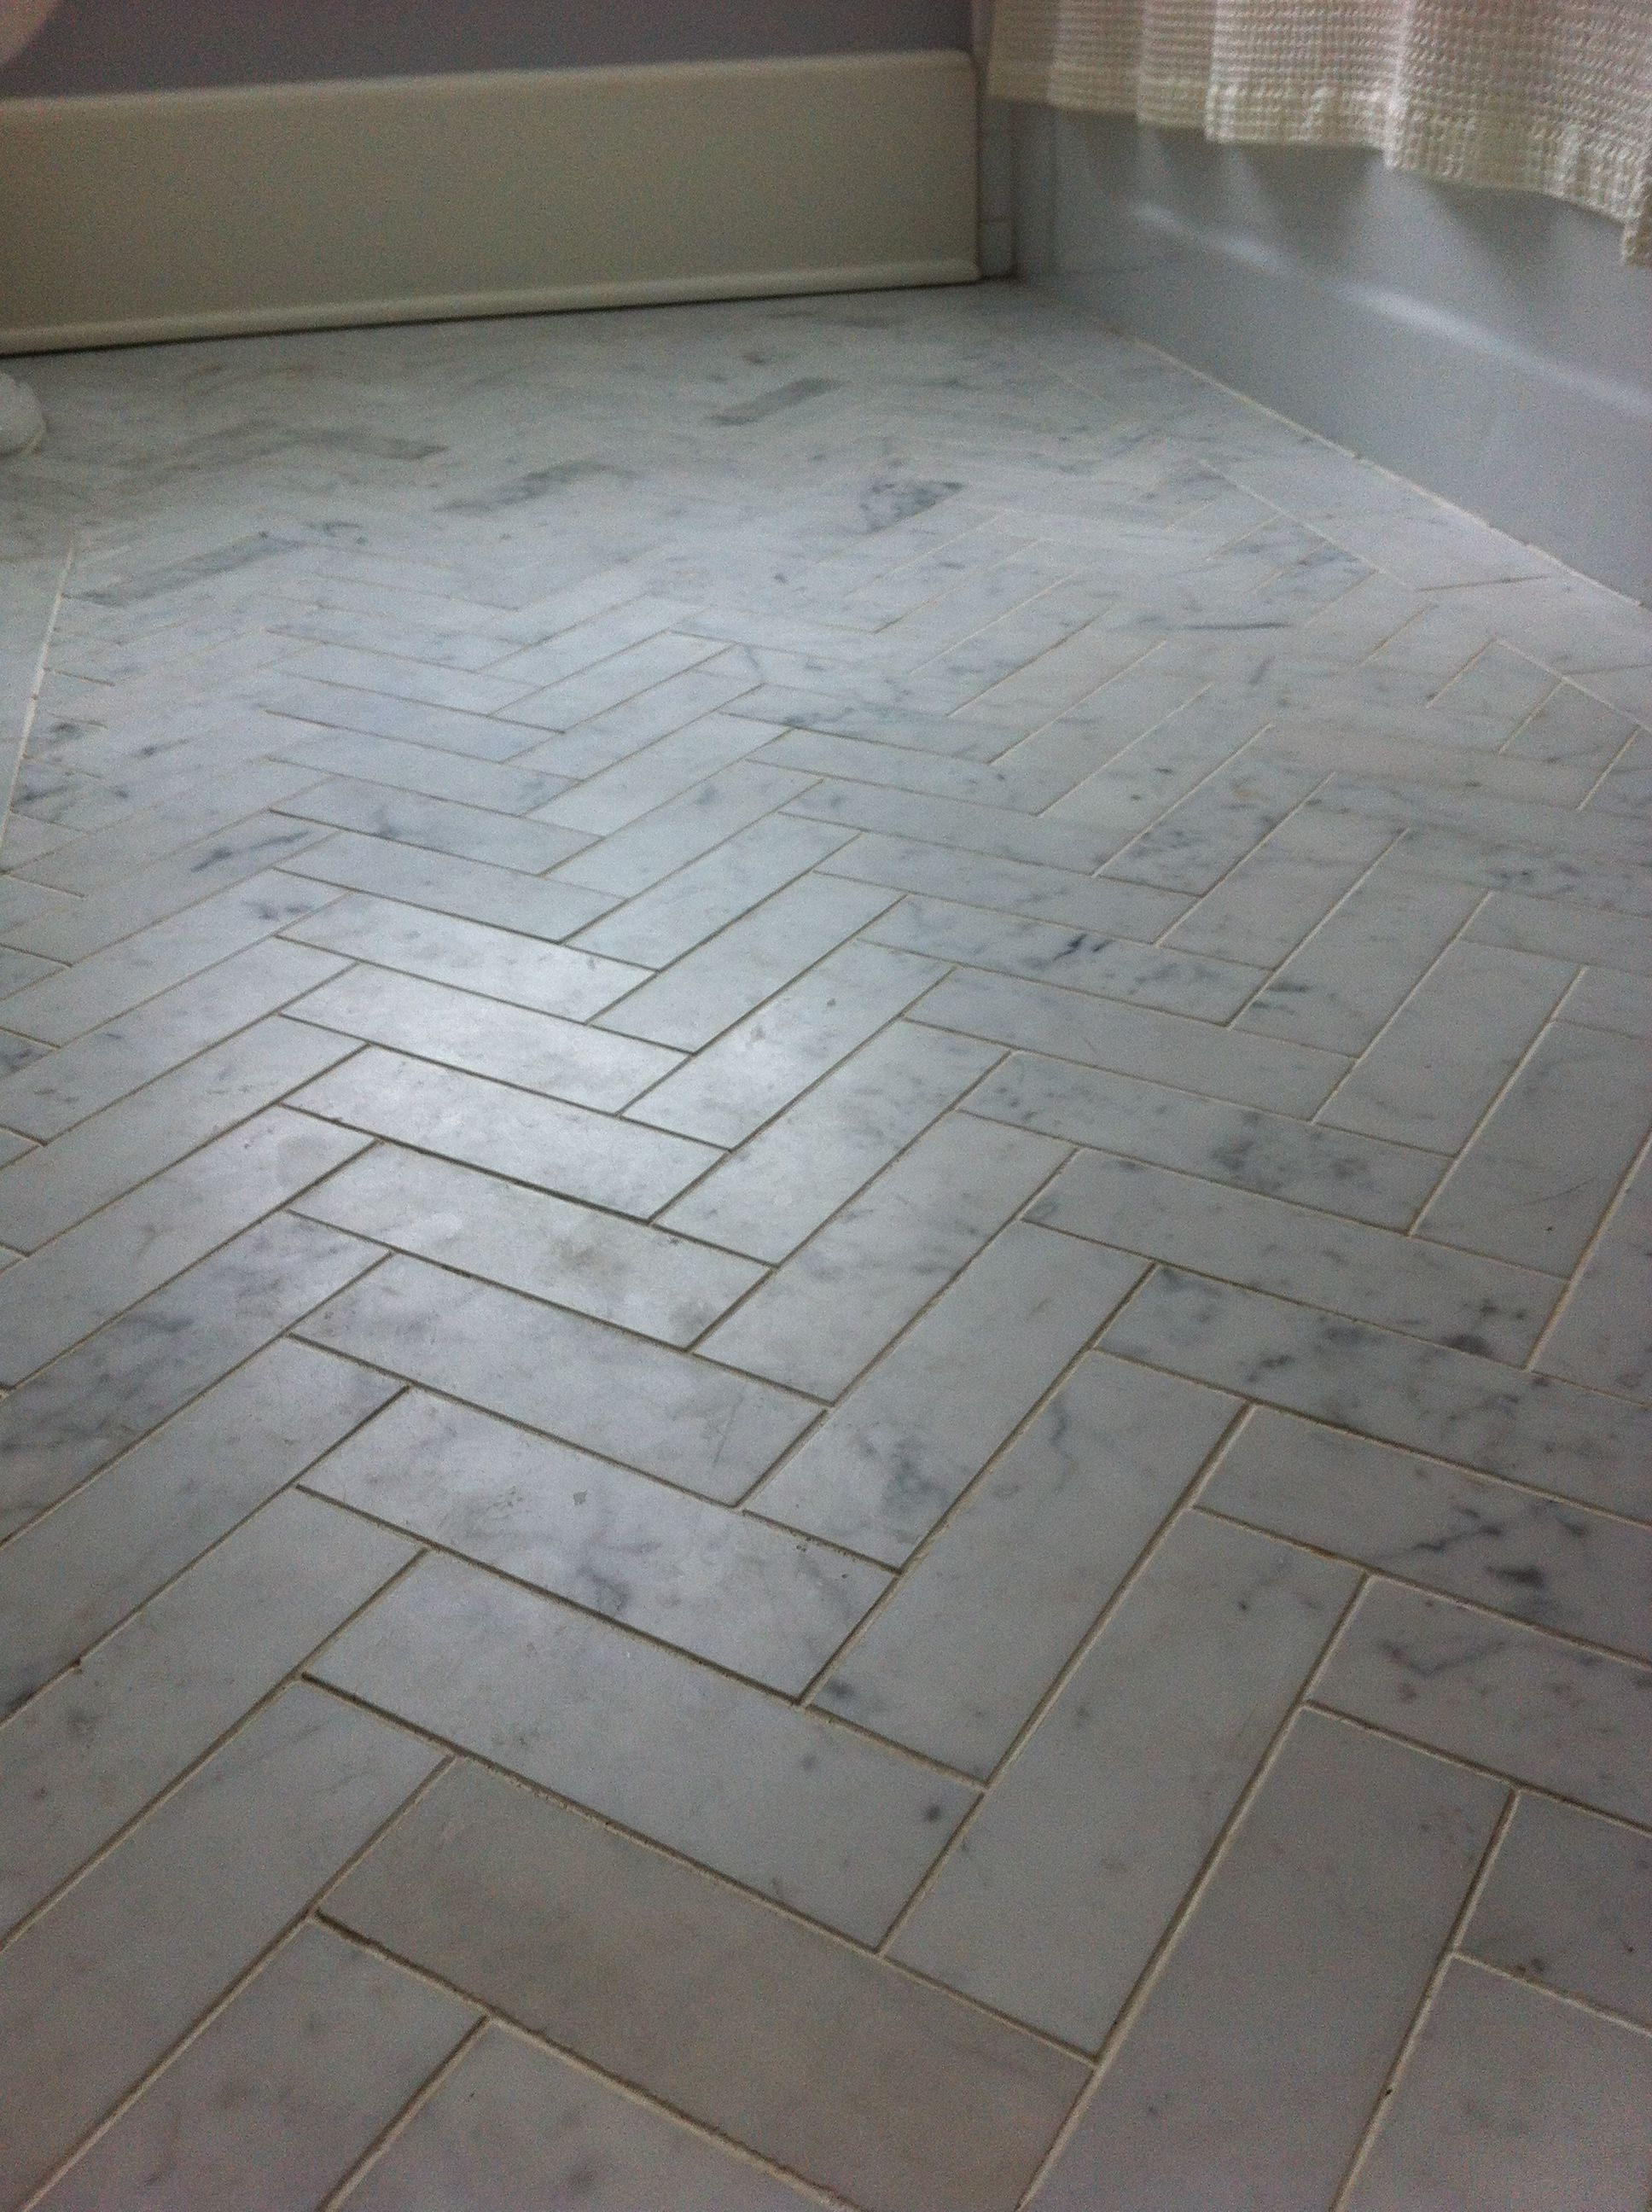 12 Marble Floor Designs For Styling Every Home: If Onyx Doesnt Work Out, Marble Tile